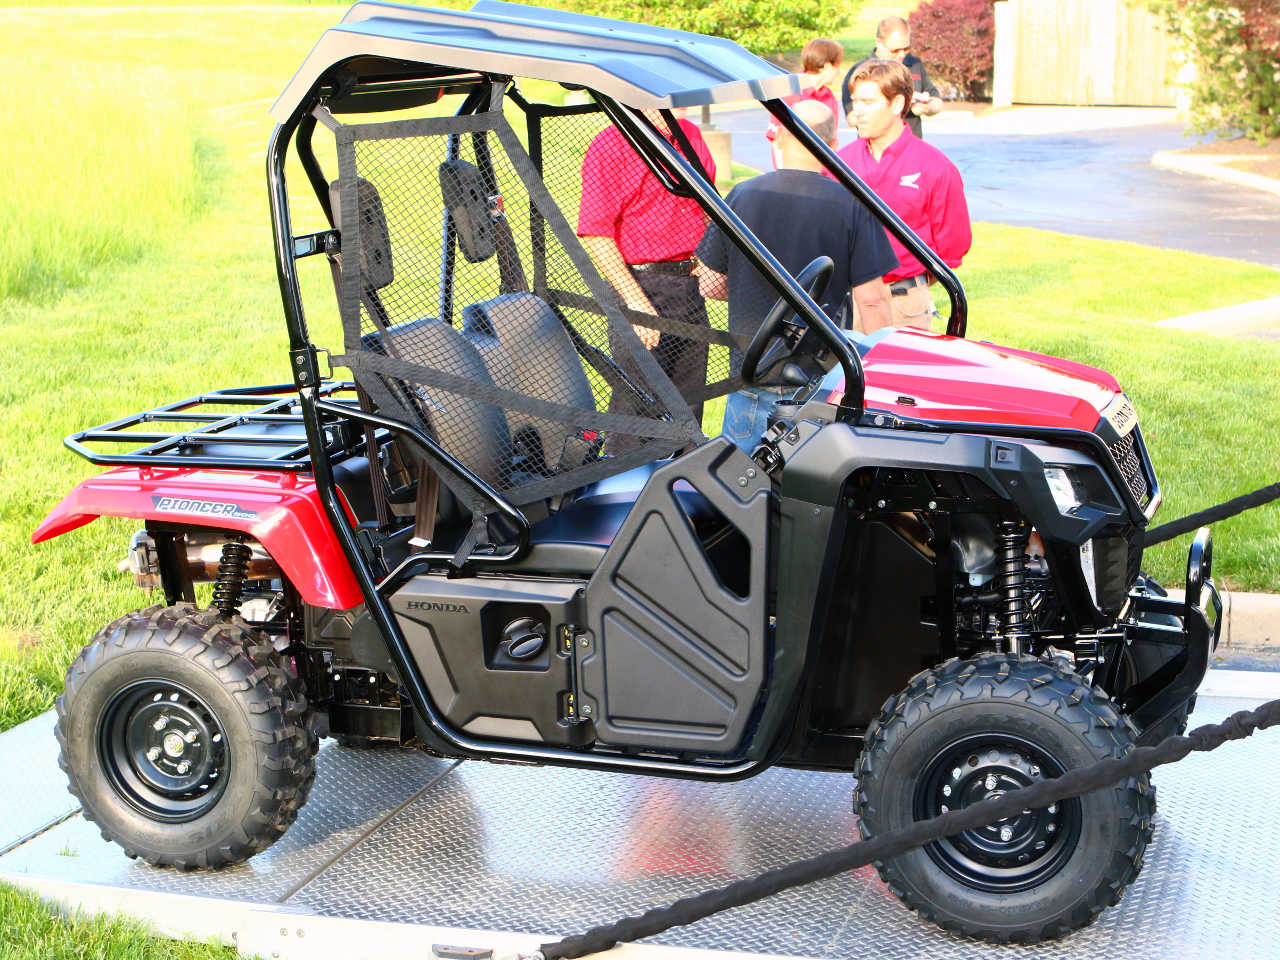 2017 Honda Pioneer500 Red Right Parked Outside Jpg